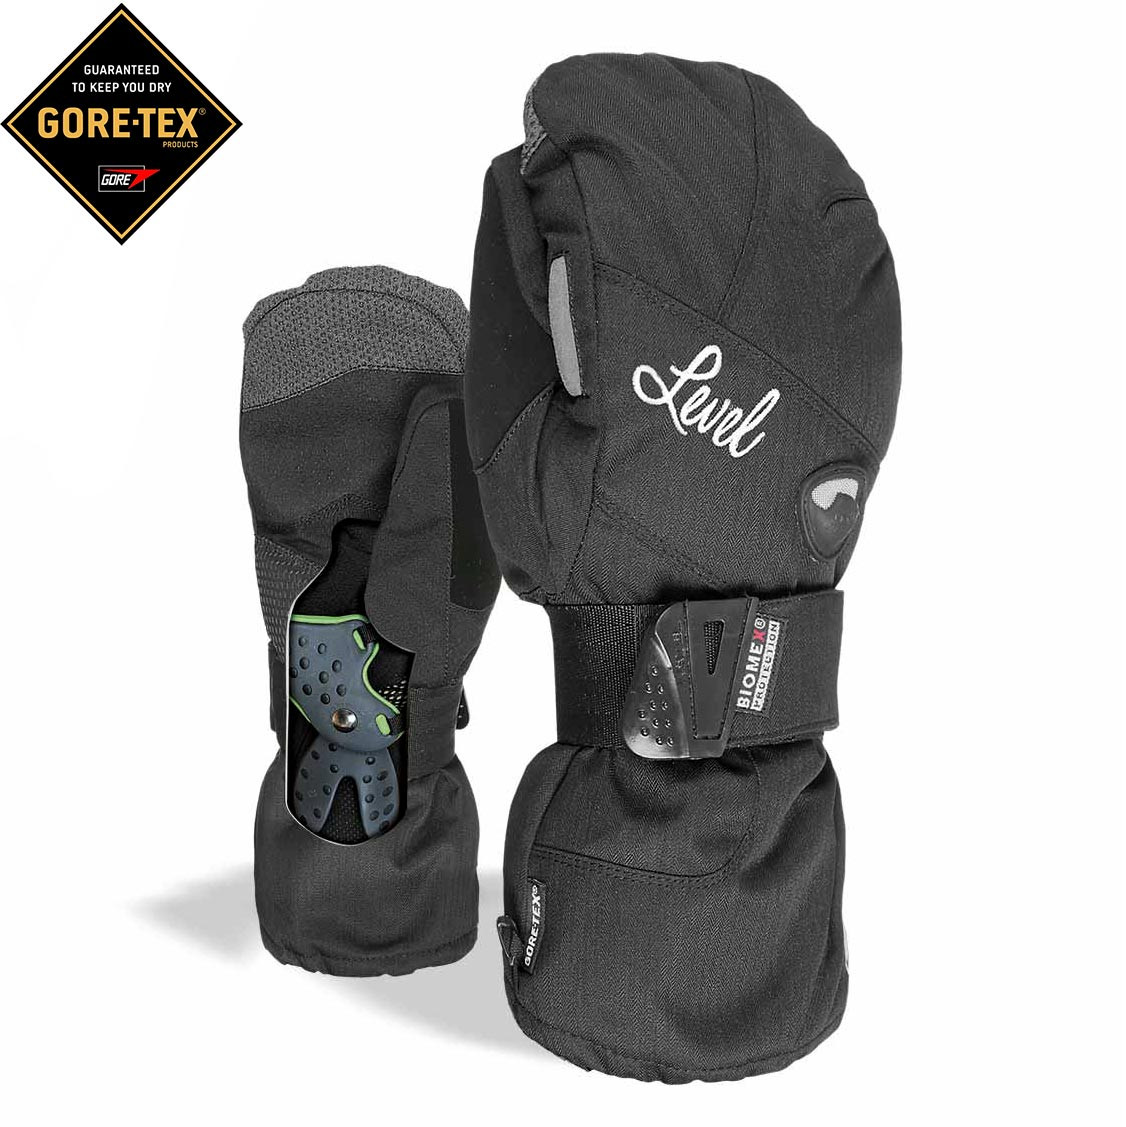 Rukavice Level Wms Half Pipe Mitt Gore-Tex black